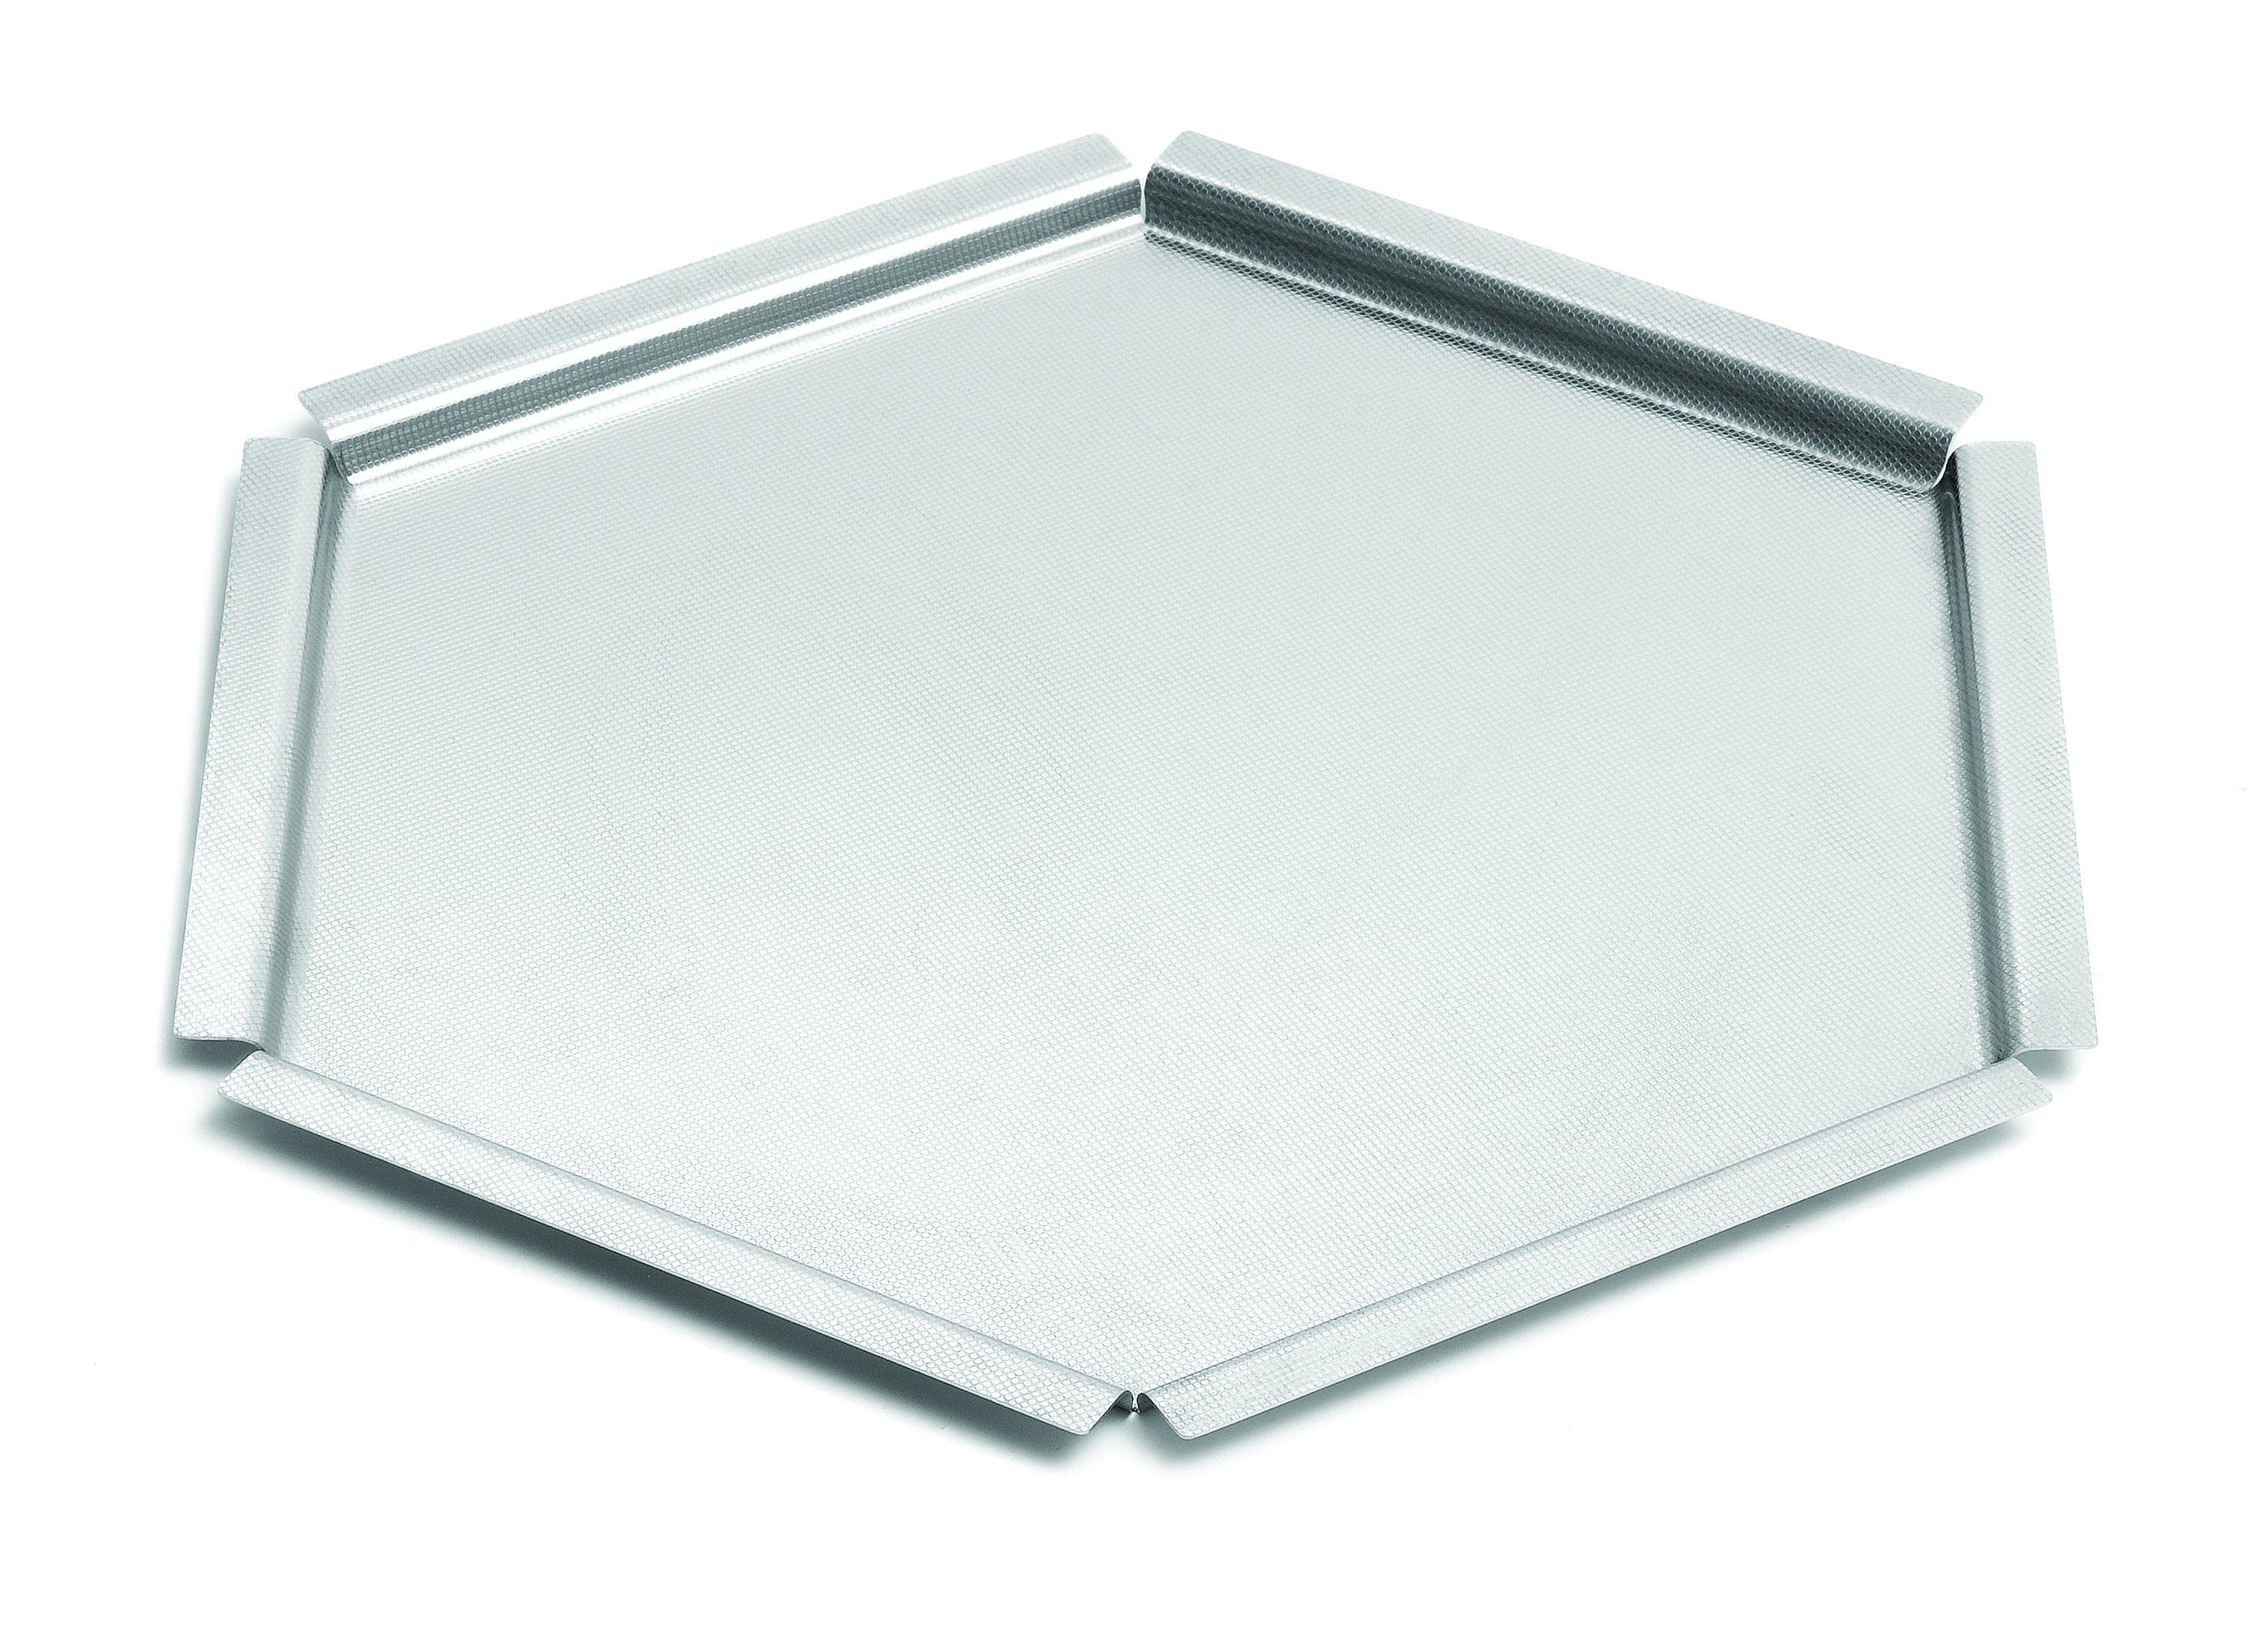 "Rosseto SM120 Honeycomb™ Medium Textured Stainless Steel Tray Surface 16"" x 16"" x 2""H"